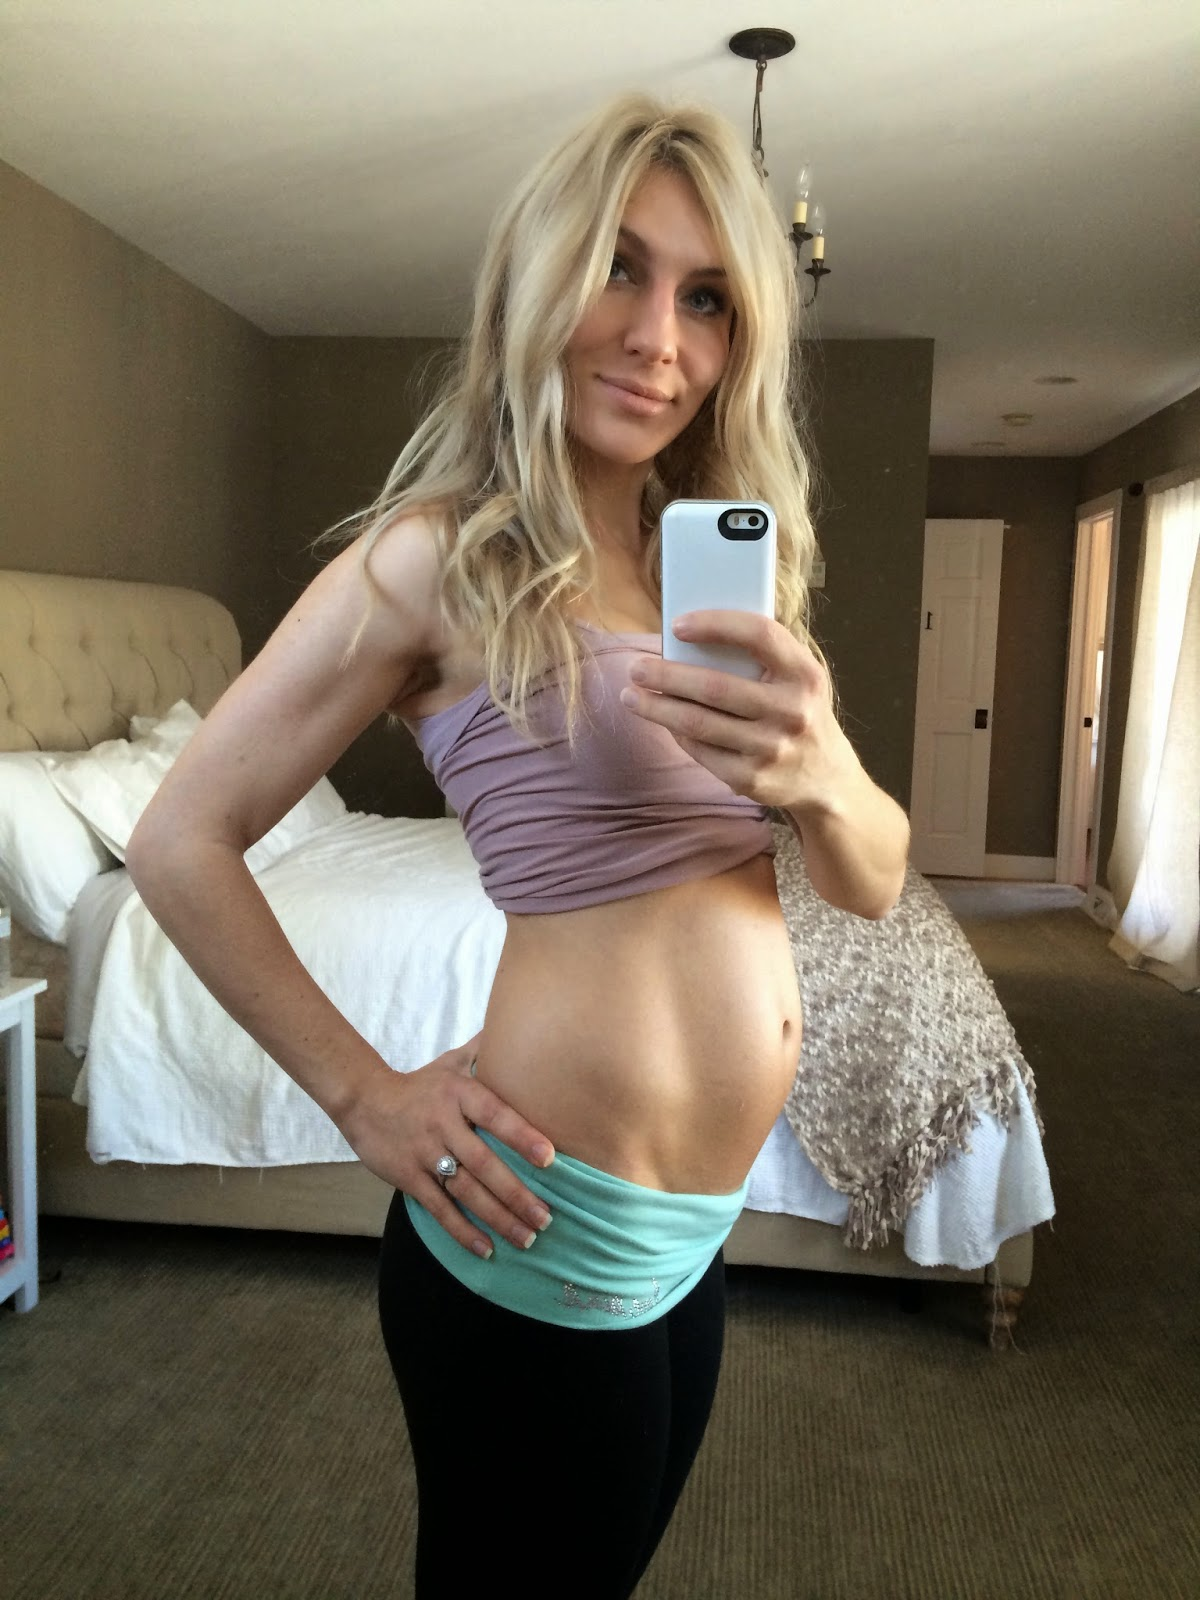 Lauren Rebecca Staying Fit While Pregnant The 2nd Time Around She works with women who are about to become surrogate mothers to check that they meet the asrm guidelines: lauren rebecca